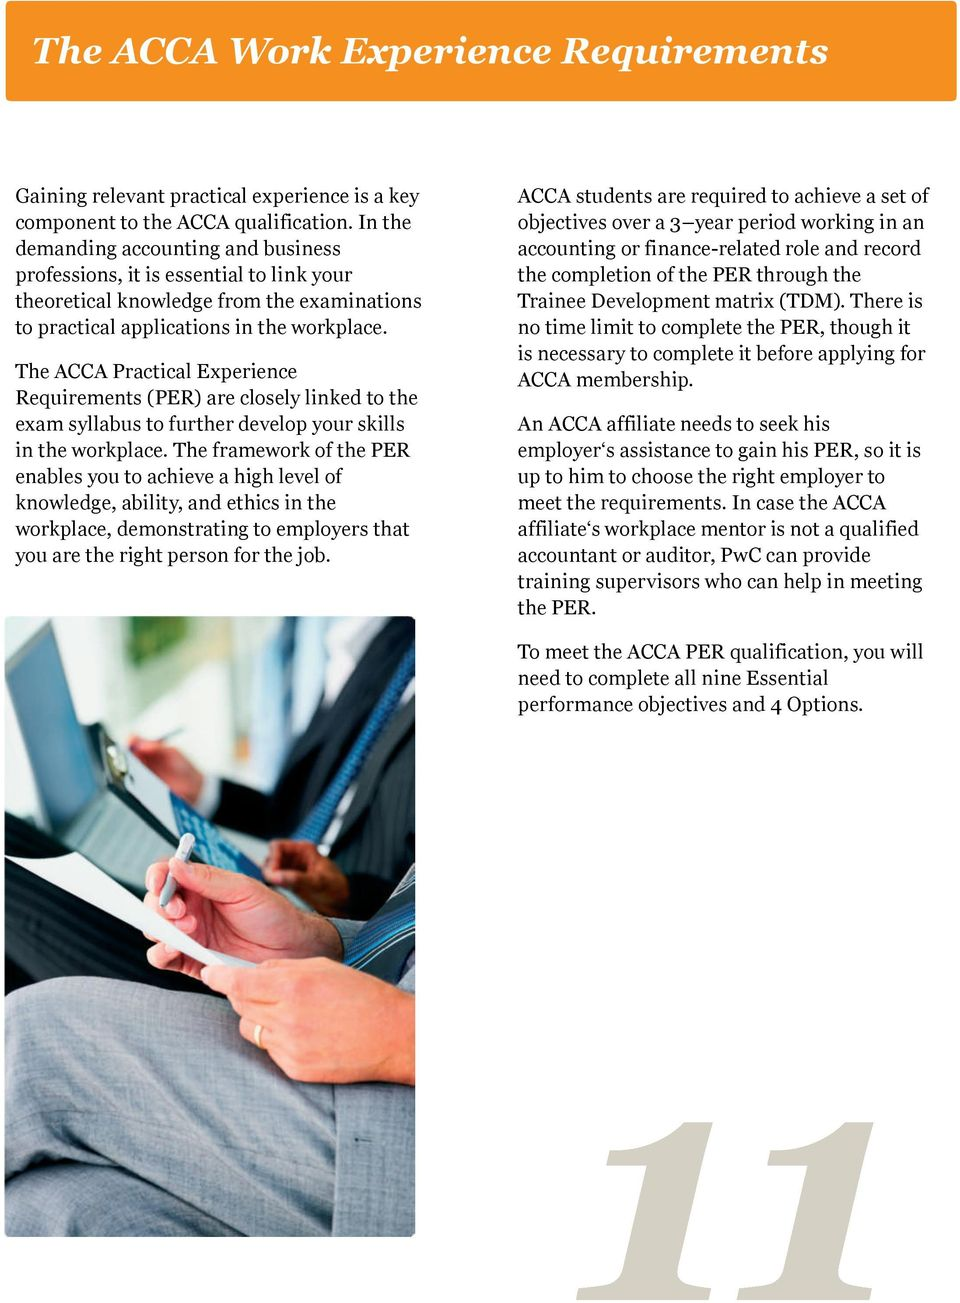 The ACCA Practical Experience Requirements (PER) are closely linked to the exam syllabus to further develop your skills in the workplace.